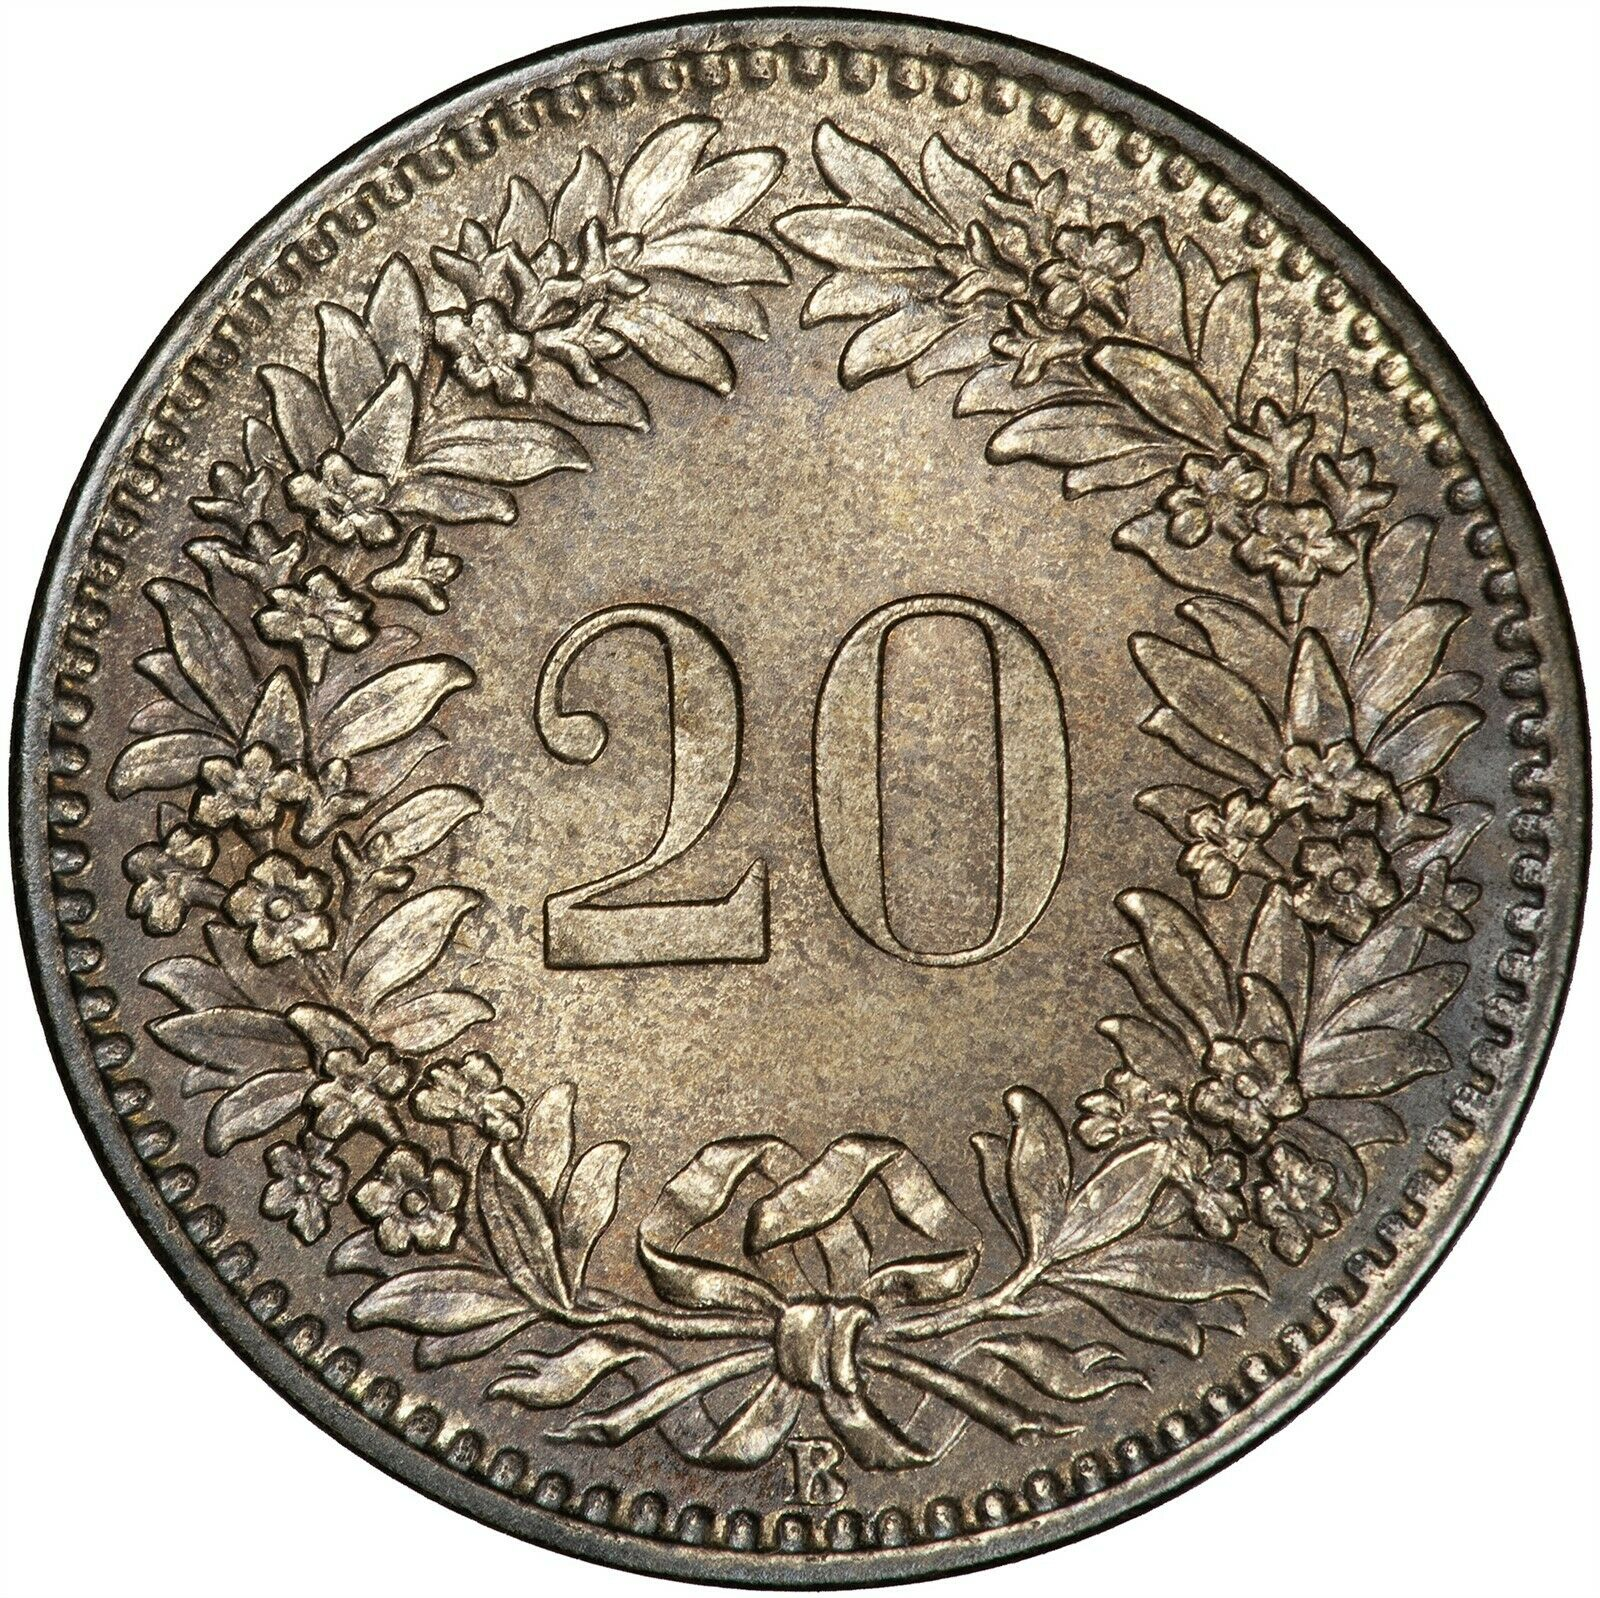 Twenty Centimes (Rappen) 1859: Photo Coin, Switzerland, 20 Rappen 1859